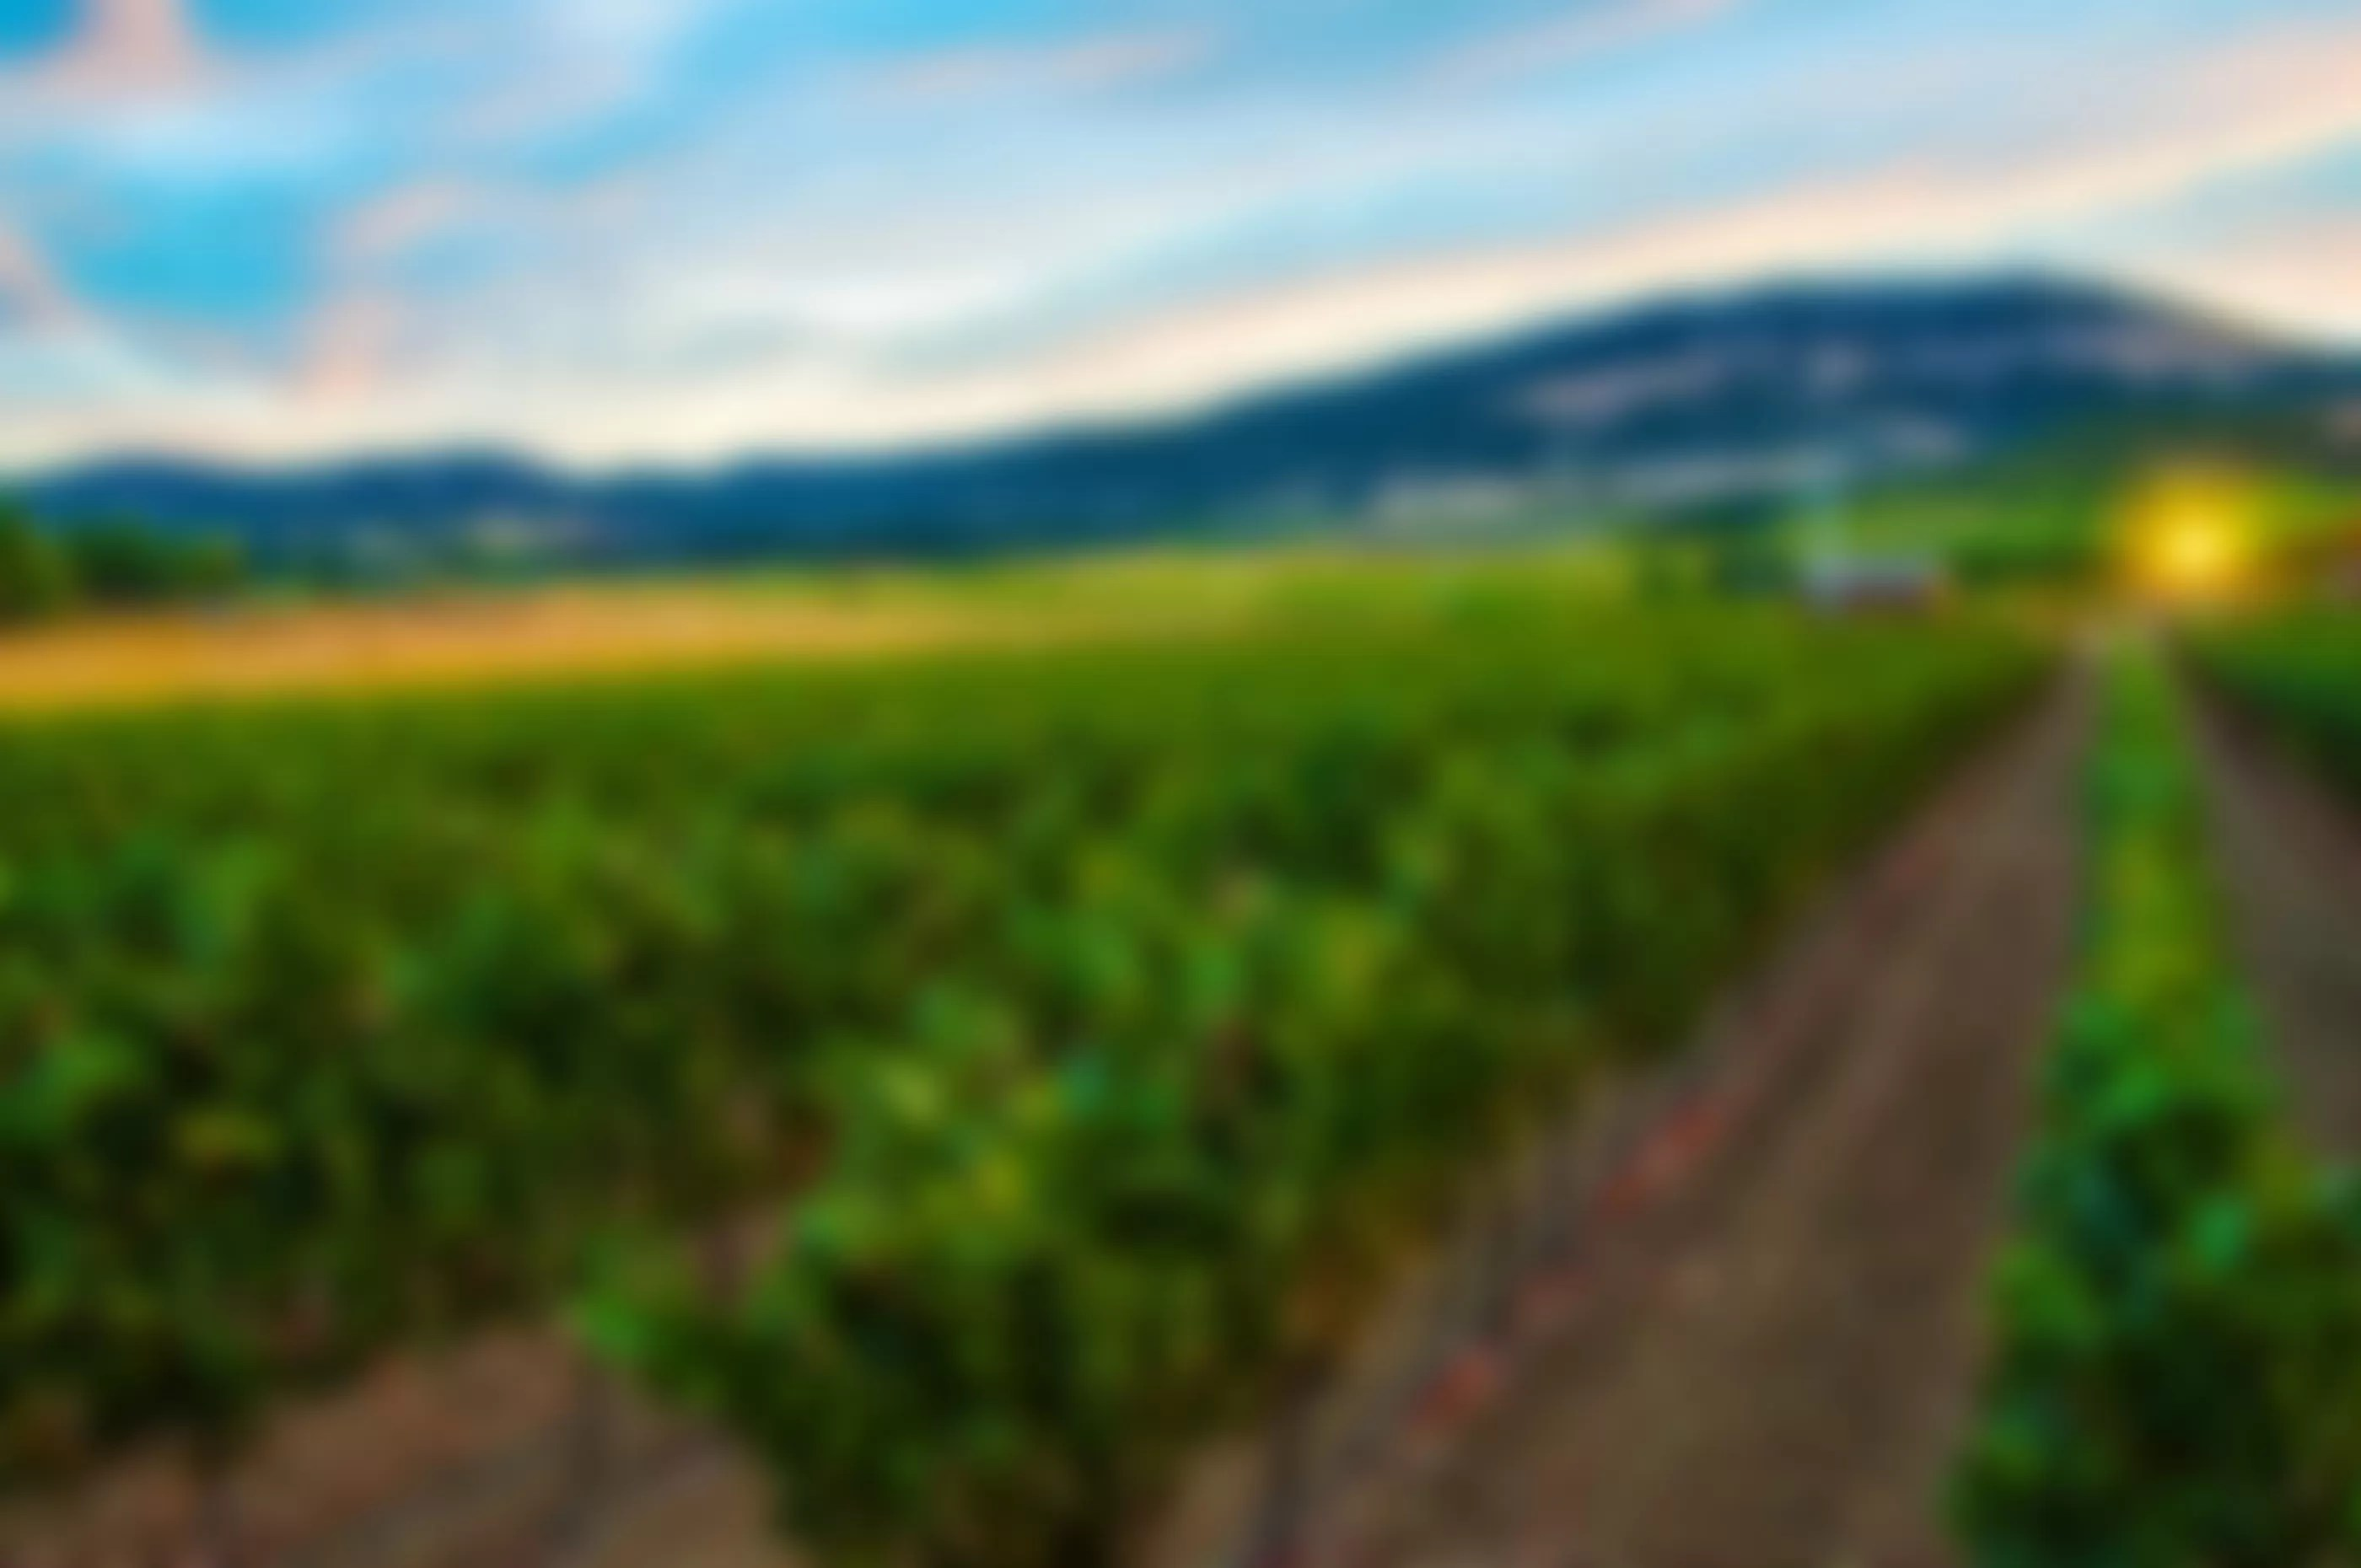 2Hawk Vineyard Blurred